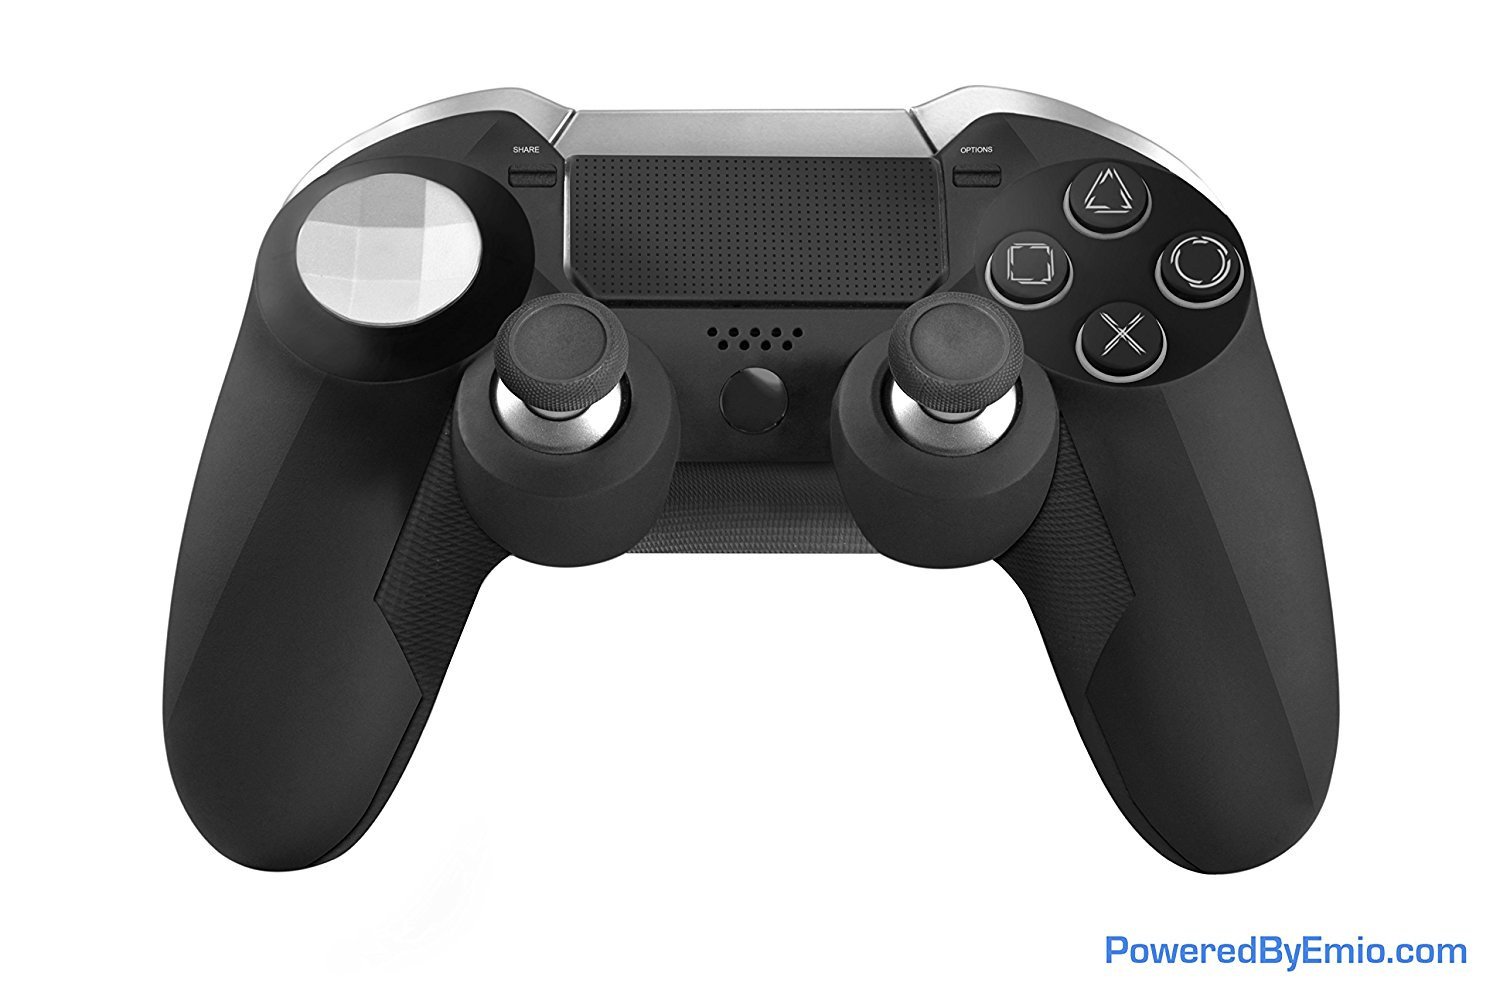 Game Controllers For Ps4 : Emio elite controller for playstation releases this week